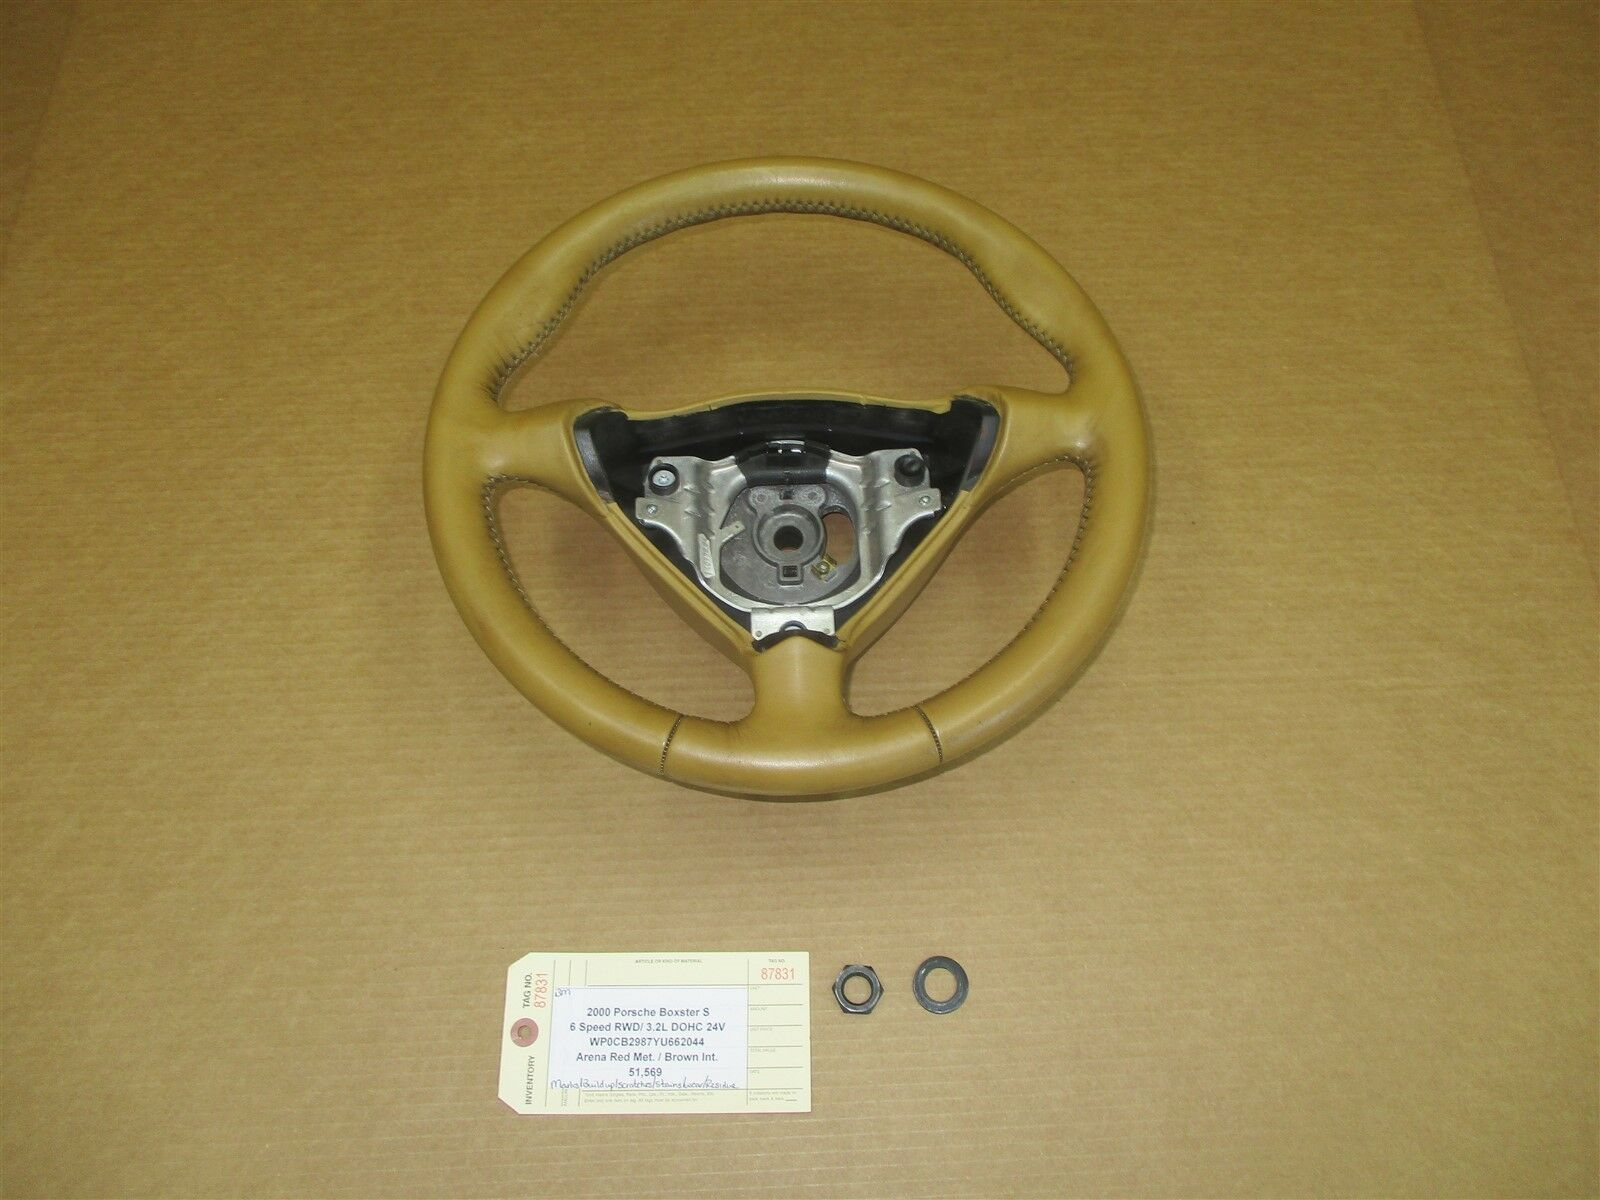 00 Boxster S RWD Porsche 986 3 SPOKE STEERING WHEEL 99634780453 51,569